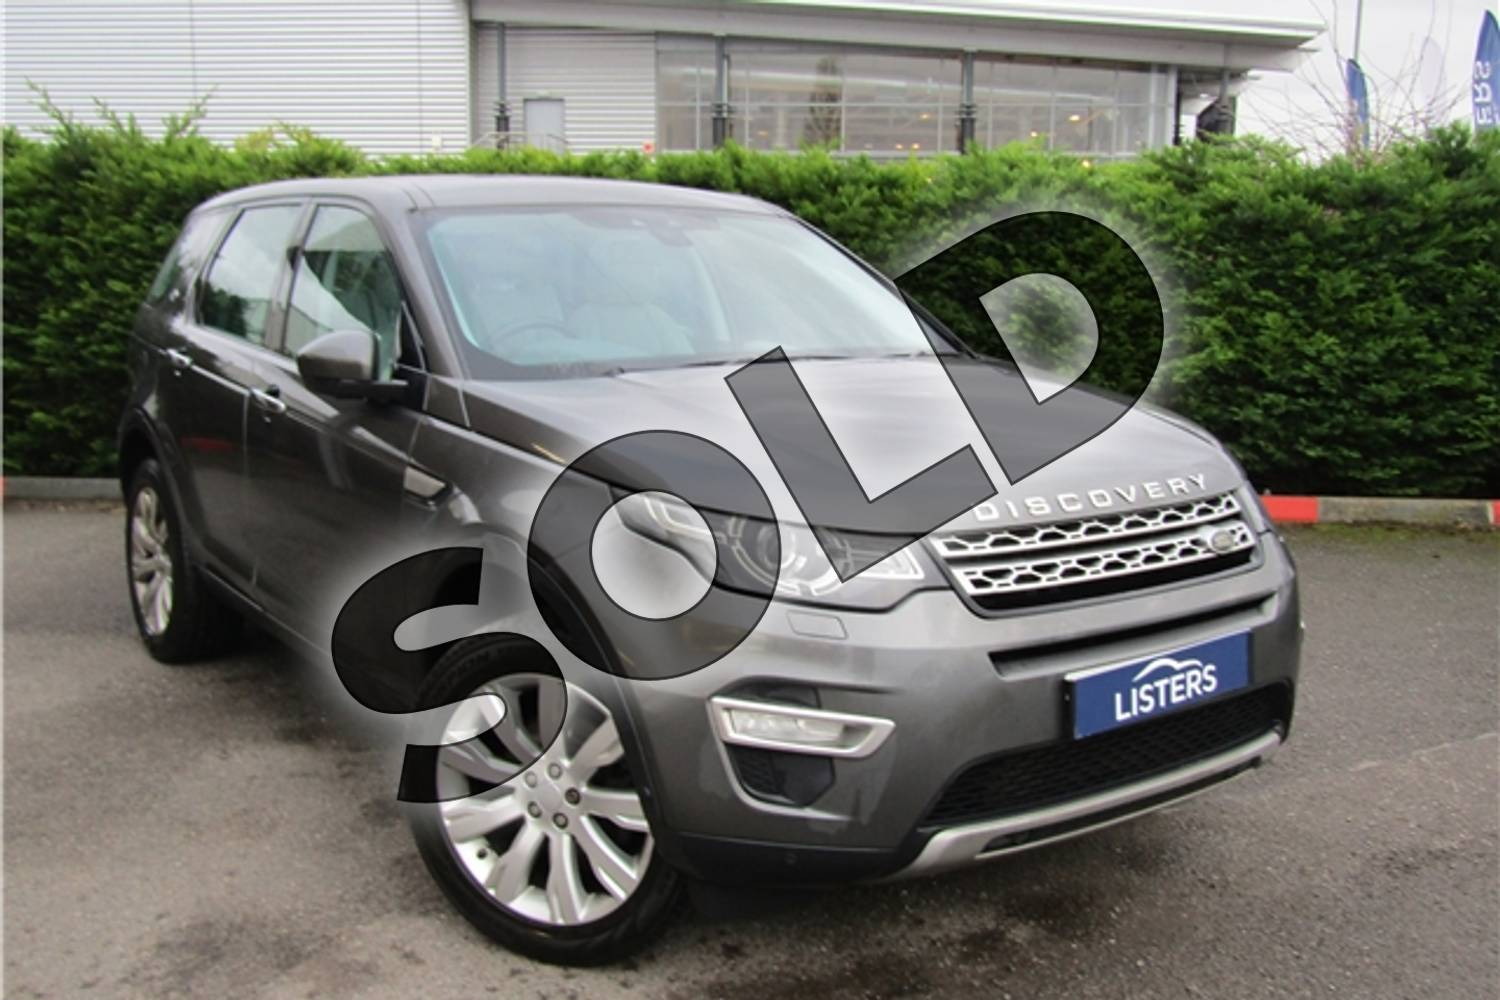 2015 Land Rover Discovery Sport Diesel SW 2.2 SD4 HSE Luxury 5dr Auto in Metallic - Corris grey at Listers U Boston